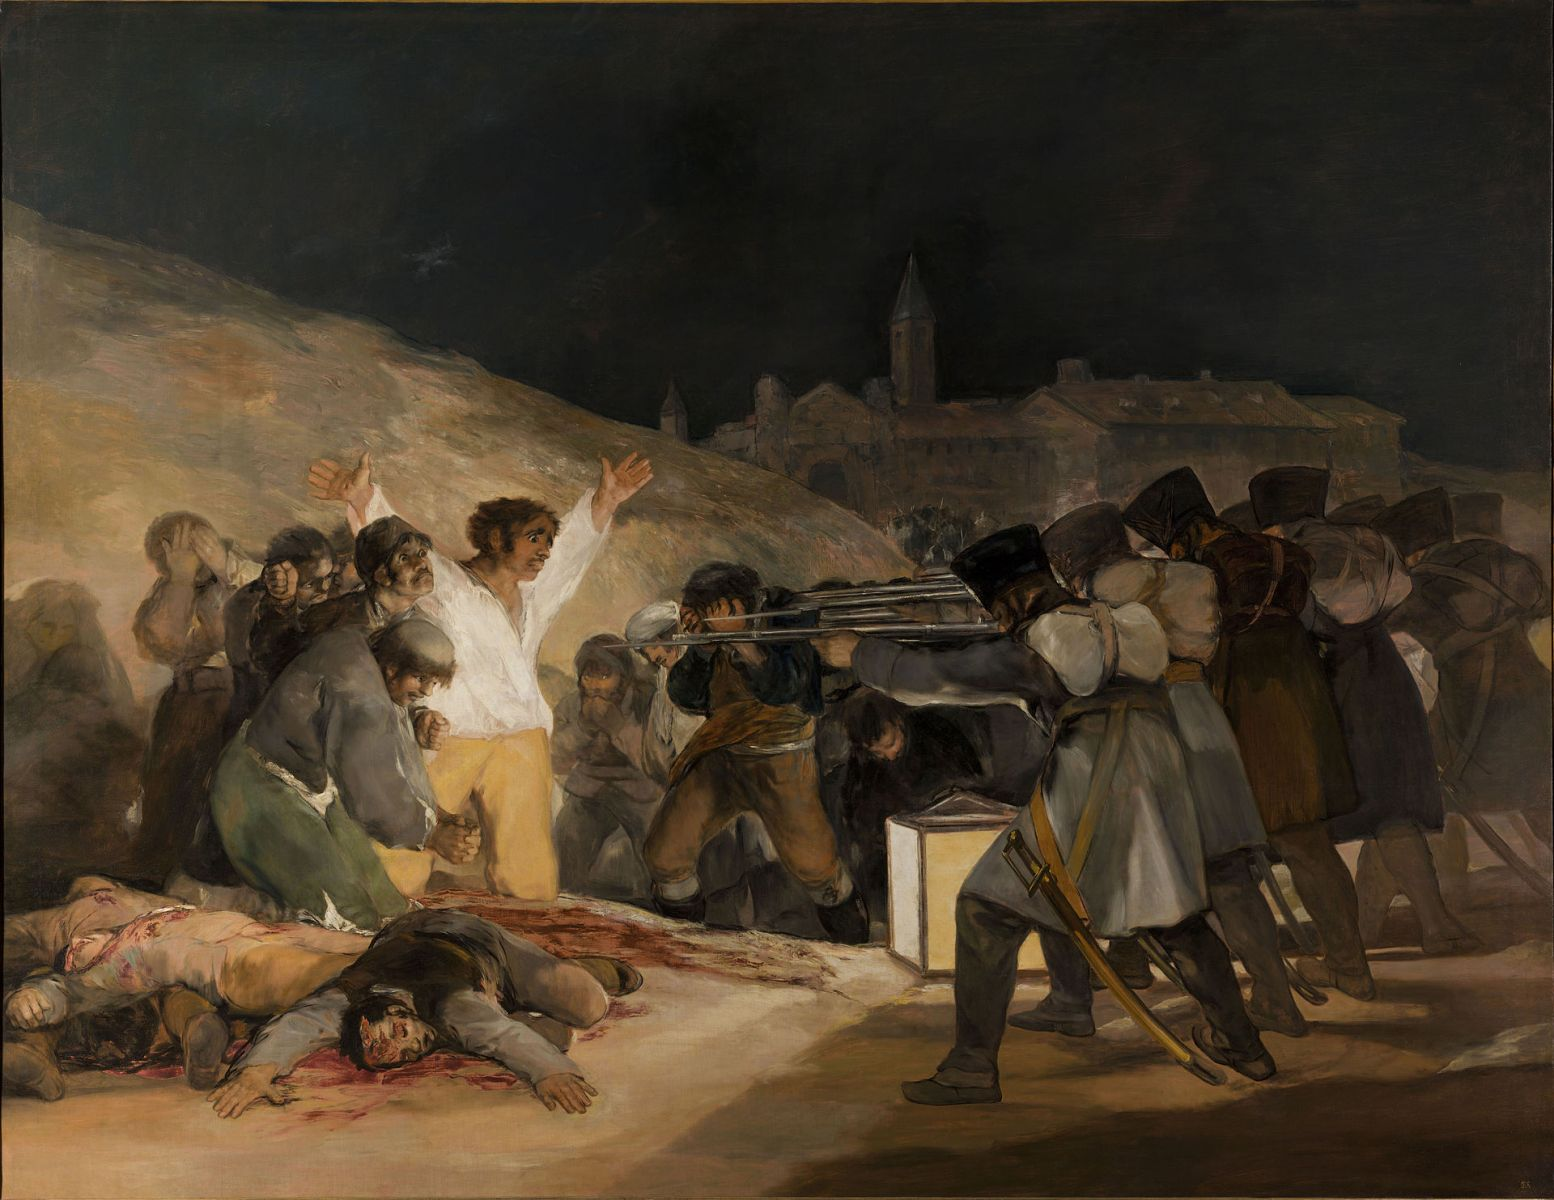 The Third of May 1808, Francisco Goya, 1814, Oil on canvas, 268 cm × 347 cm